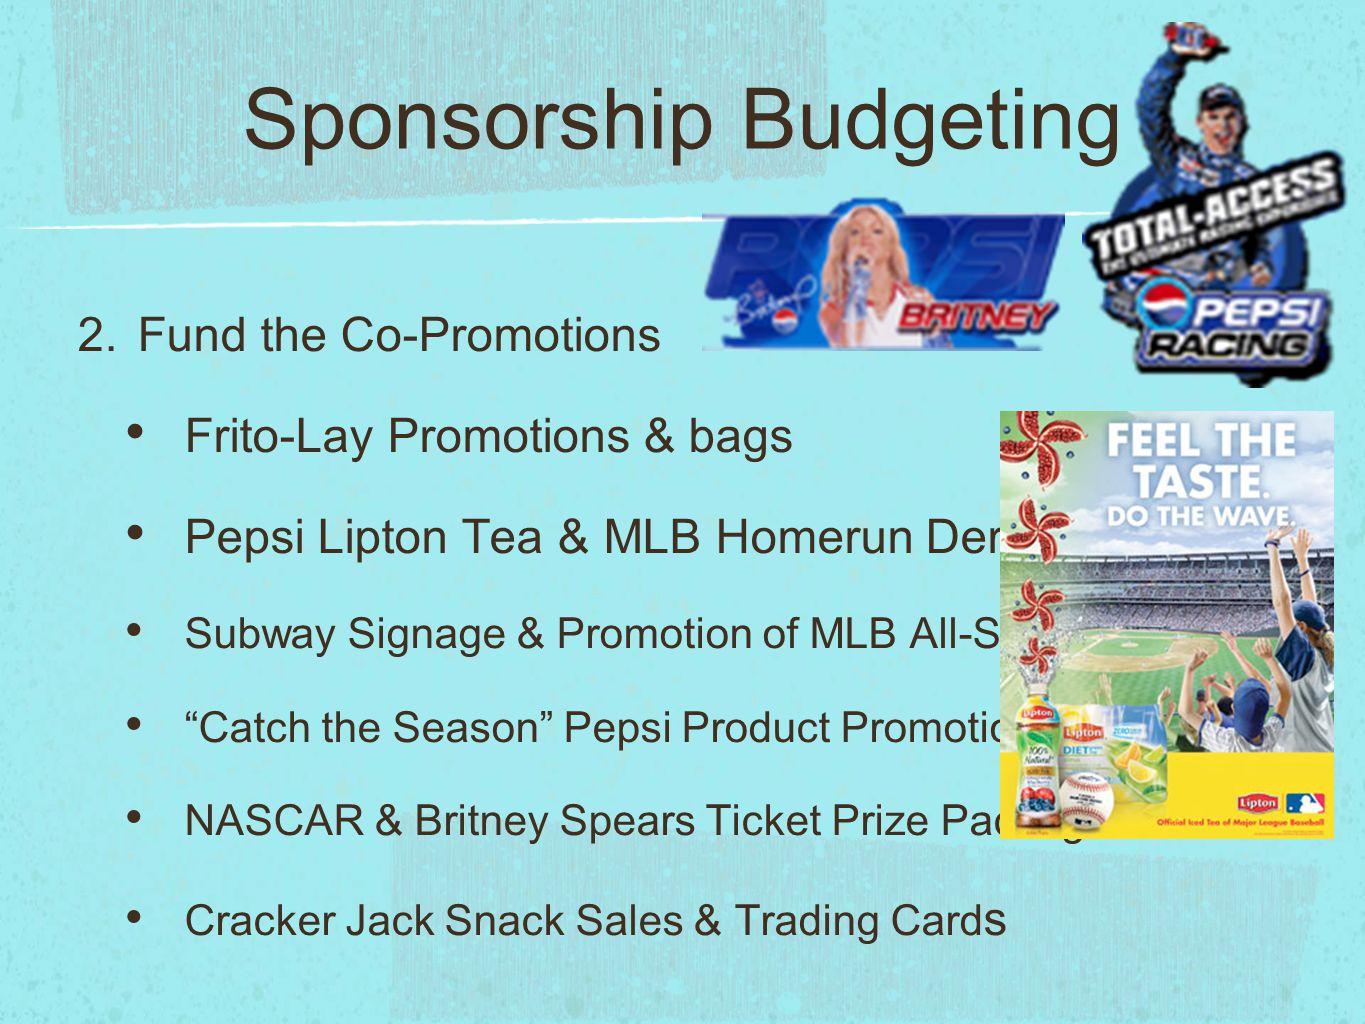 Sponsorship Budgeting 2. Fund the Co-Promotions Frito-Lay Promotions & bags Pepsi Lipton Tea & MLB Homerun Derby Subway Signage & Promotion of MLB All